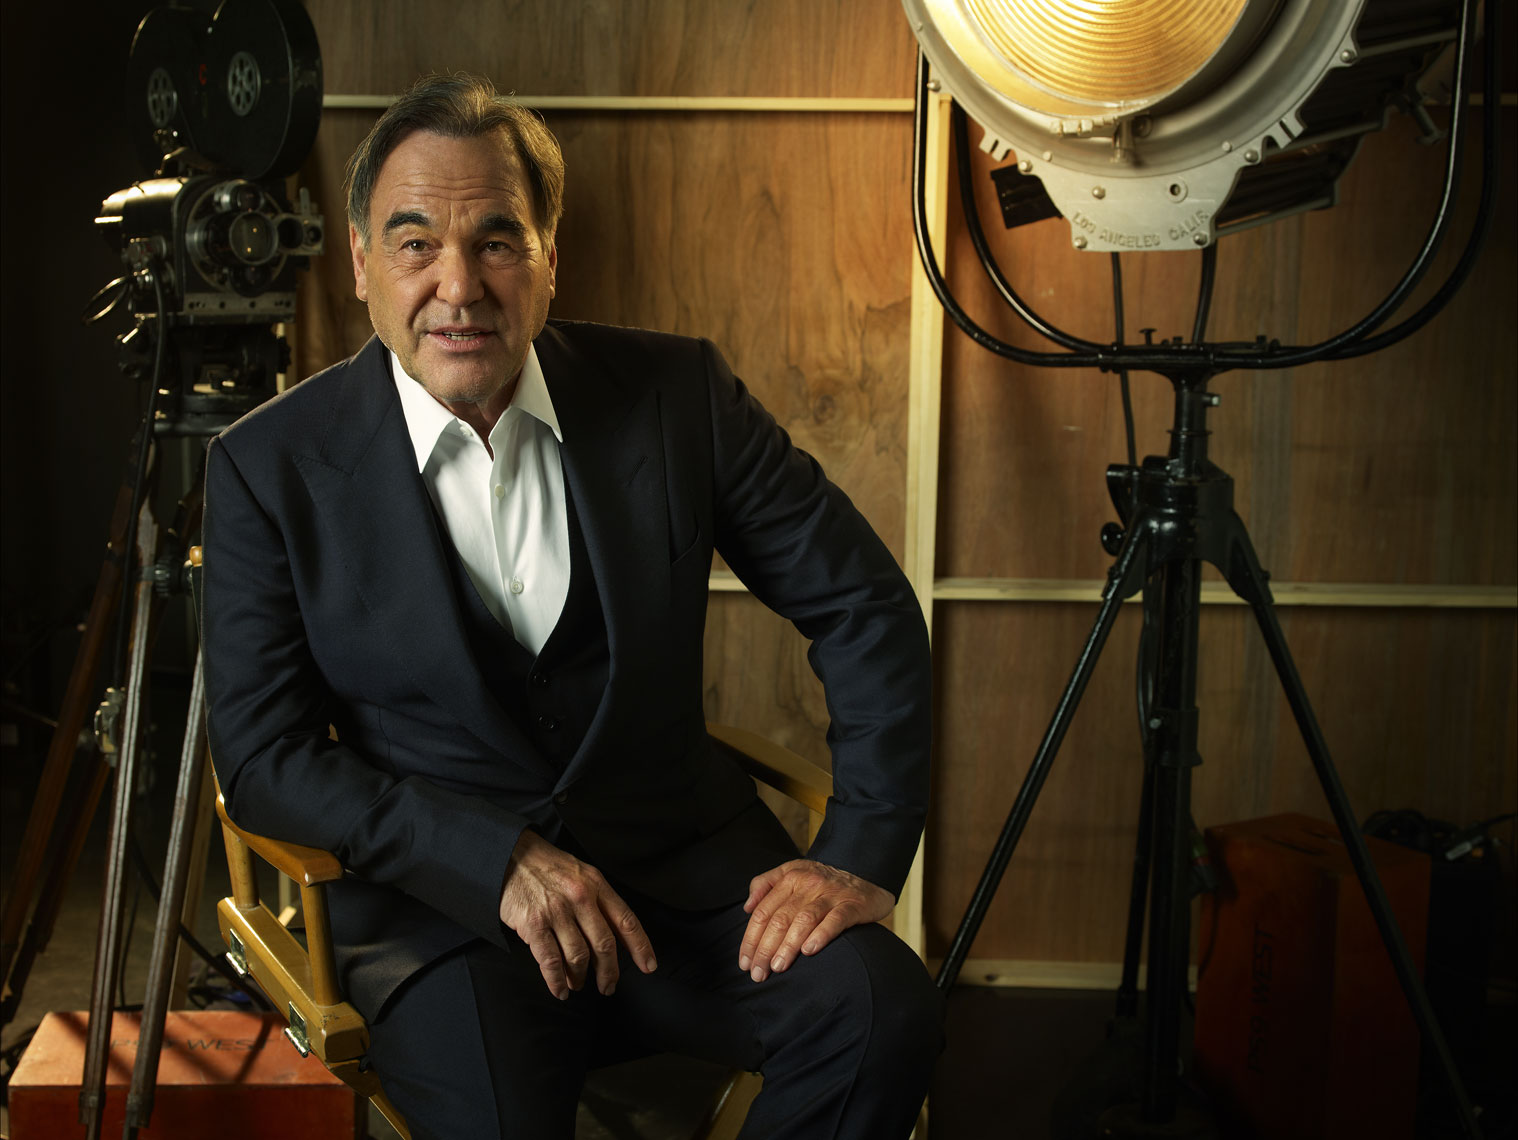 Oliver-Stone-by-Robert-Ascroft-01-DUP.jpg